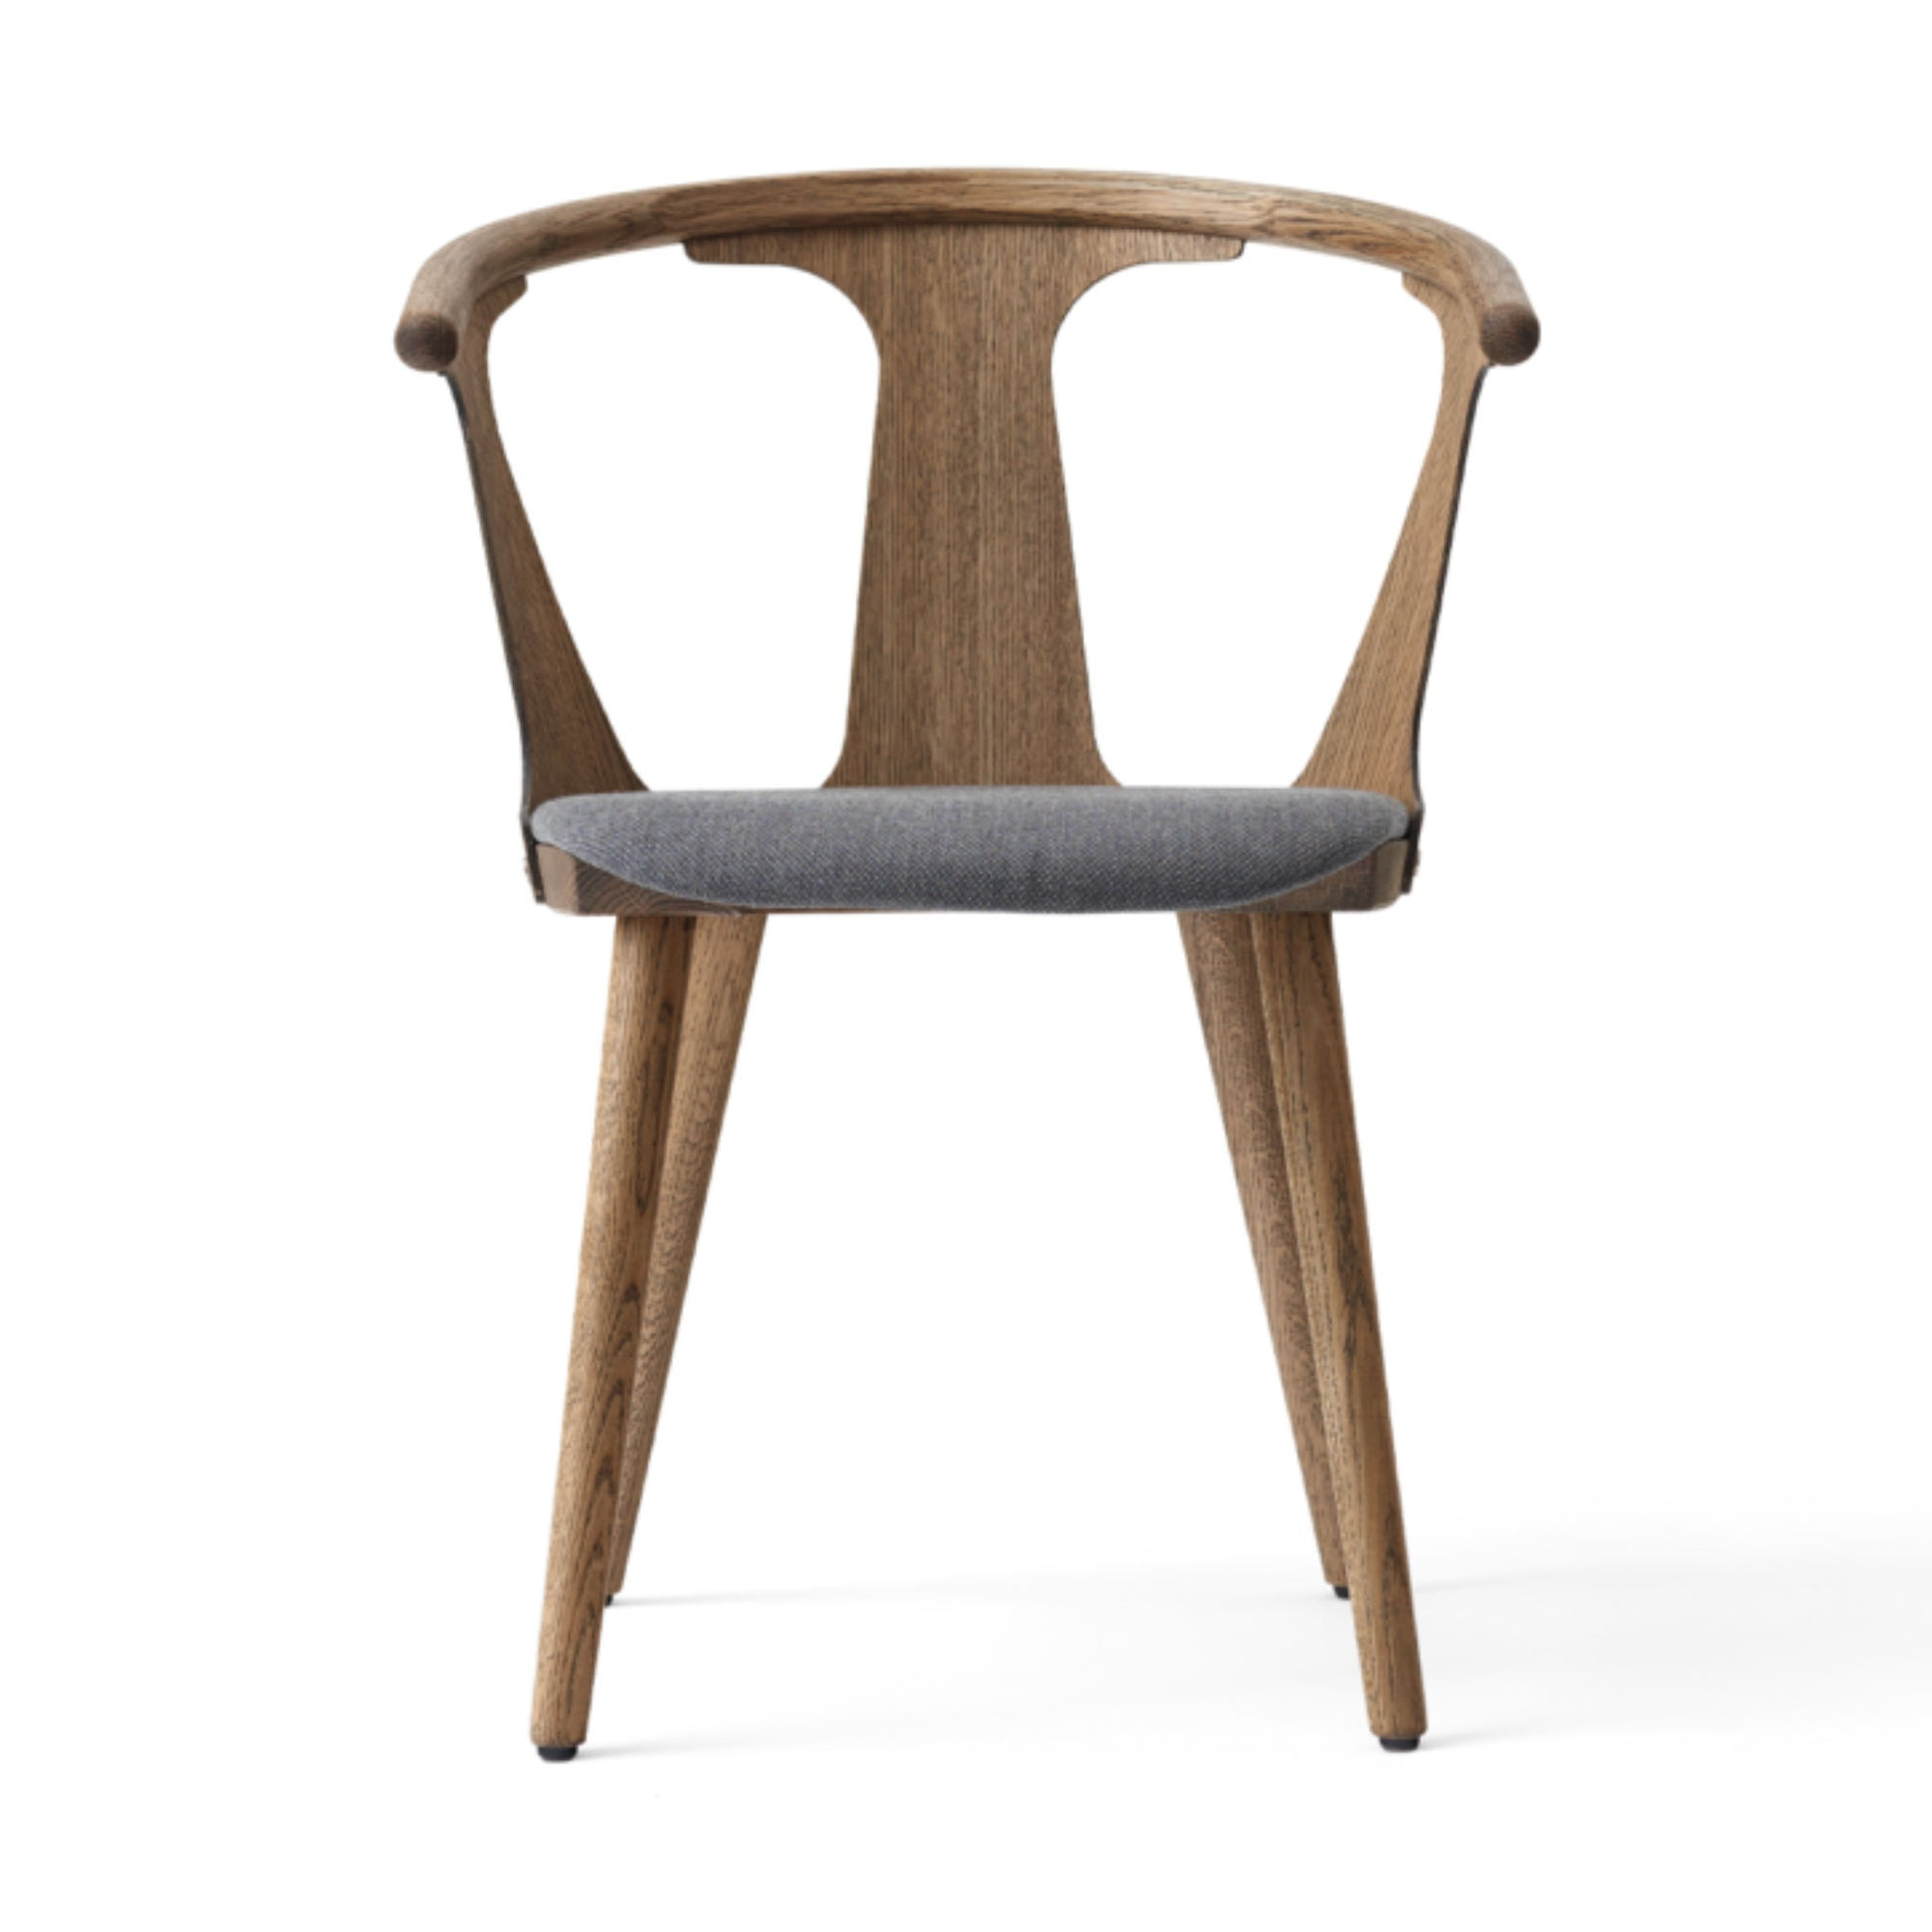 &Tradition In Between SK2 chair, fiord 171 - smoked oiled oak